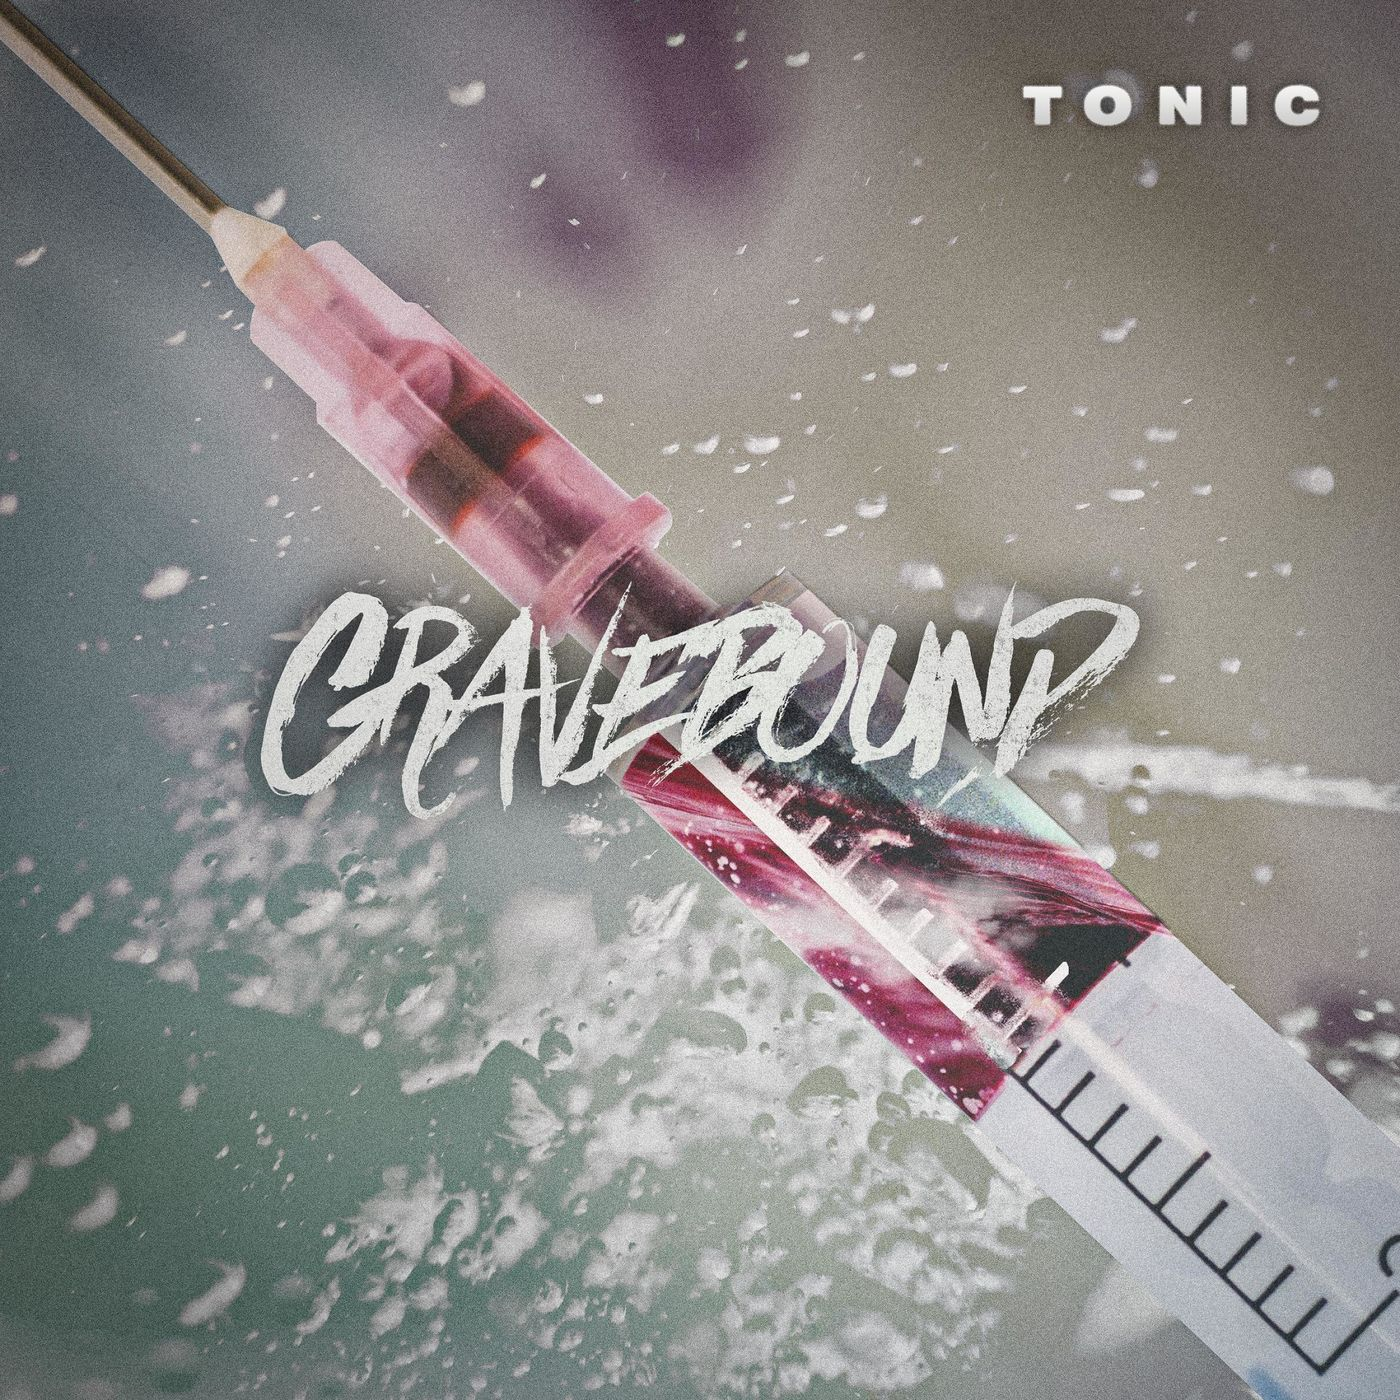 GraveBound - Tonic [single] (2021)